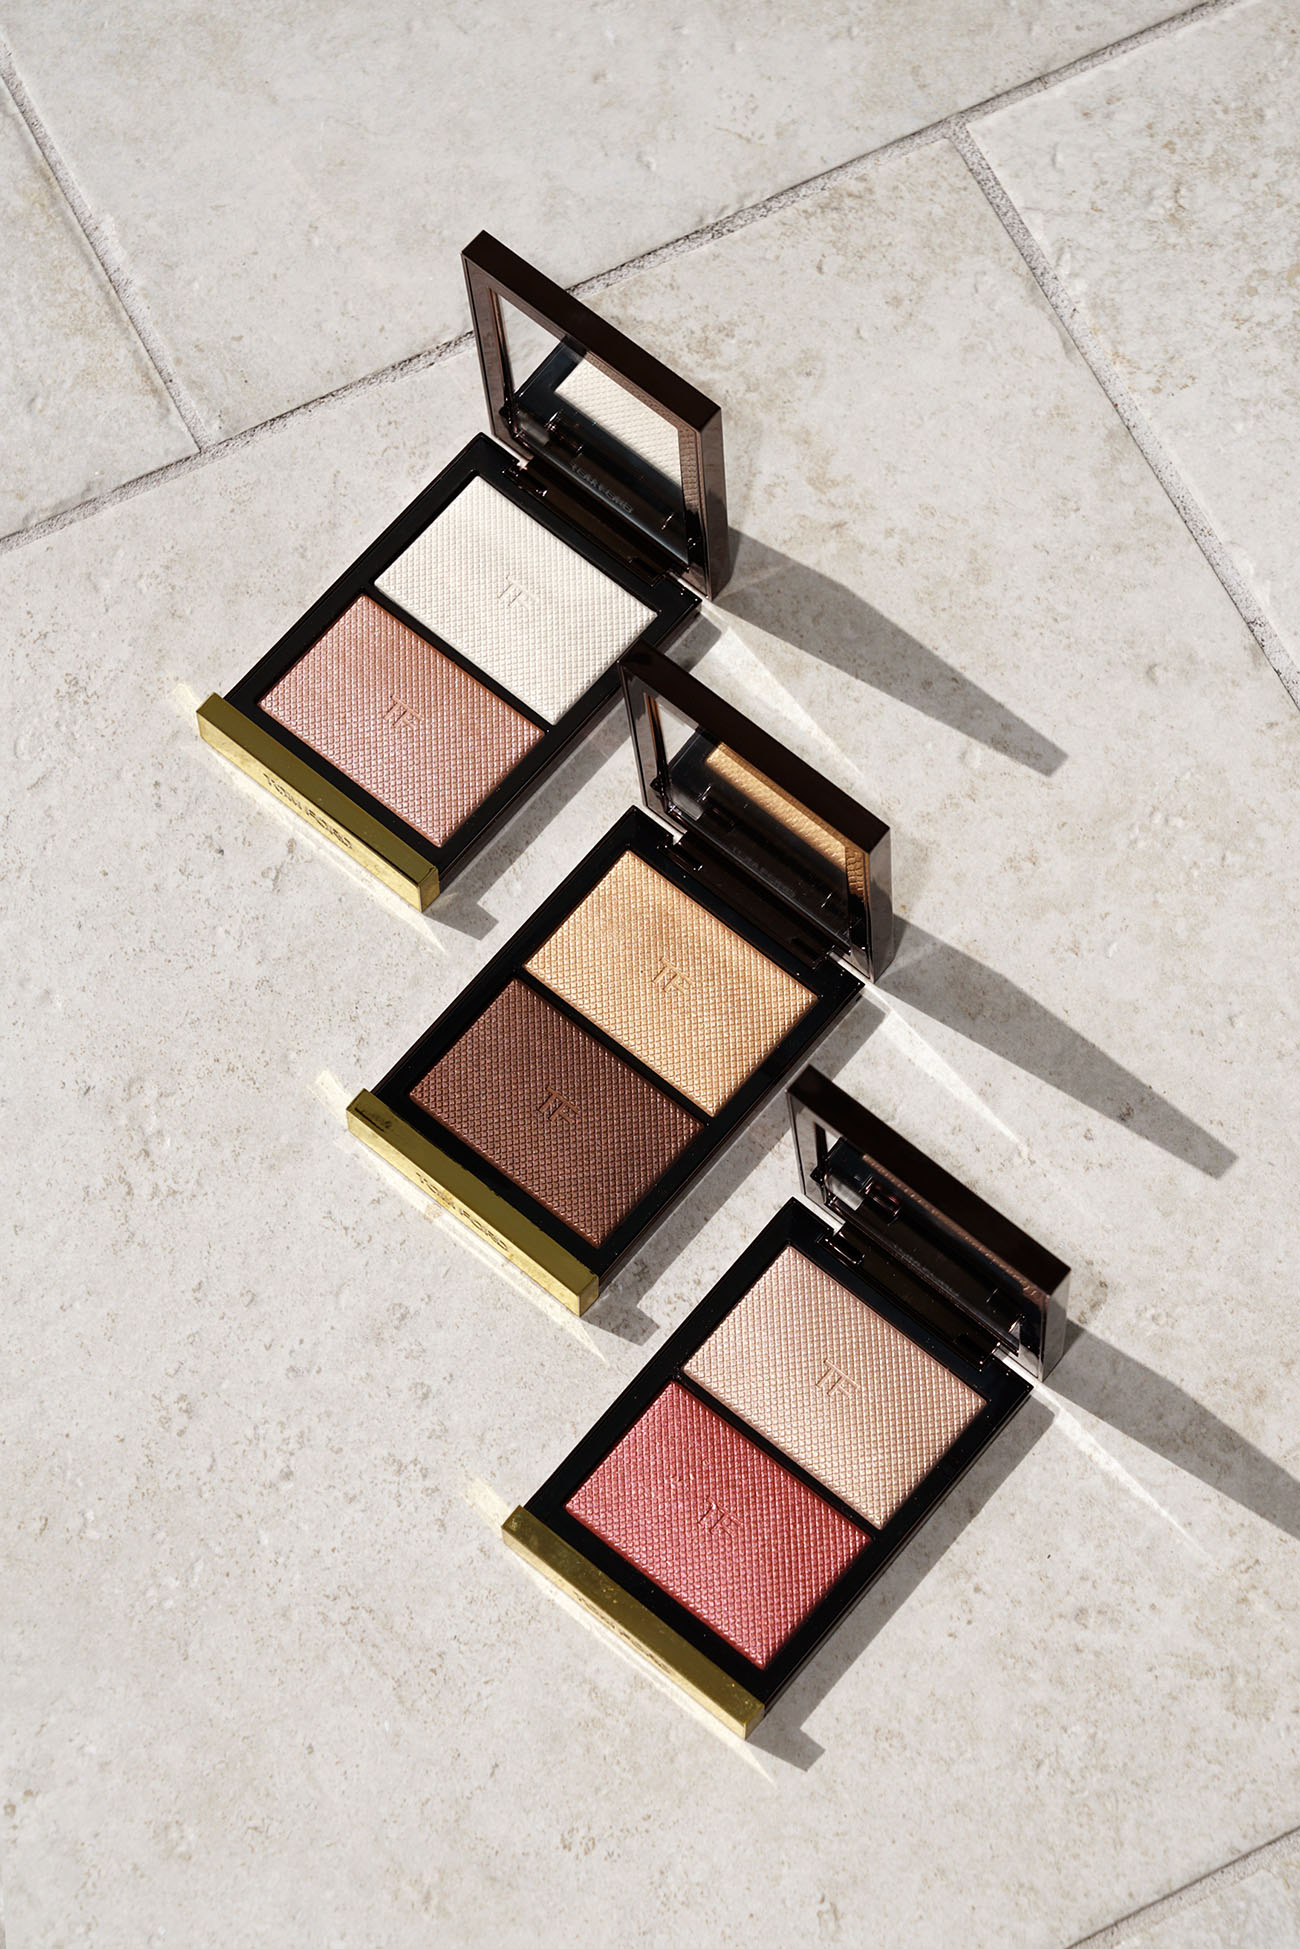 Tom Ford Skin Illuminating Duo: Moodlight, Flicker and Incandescent